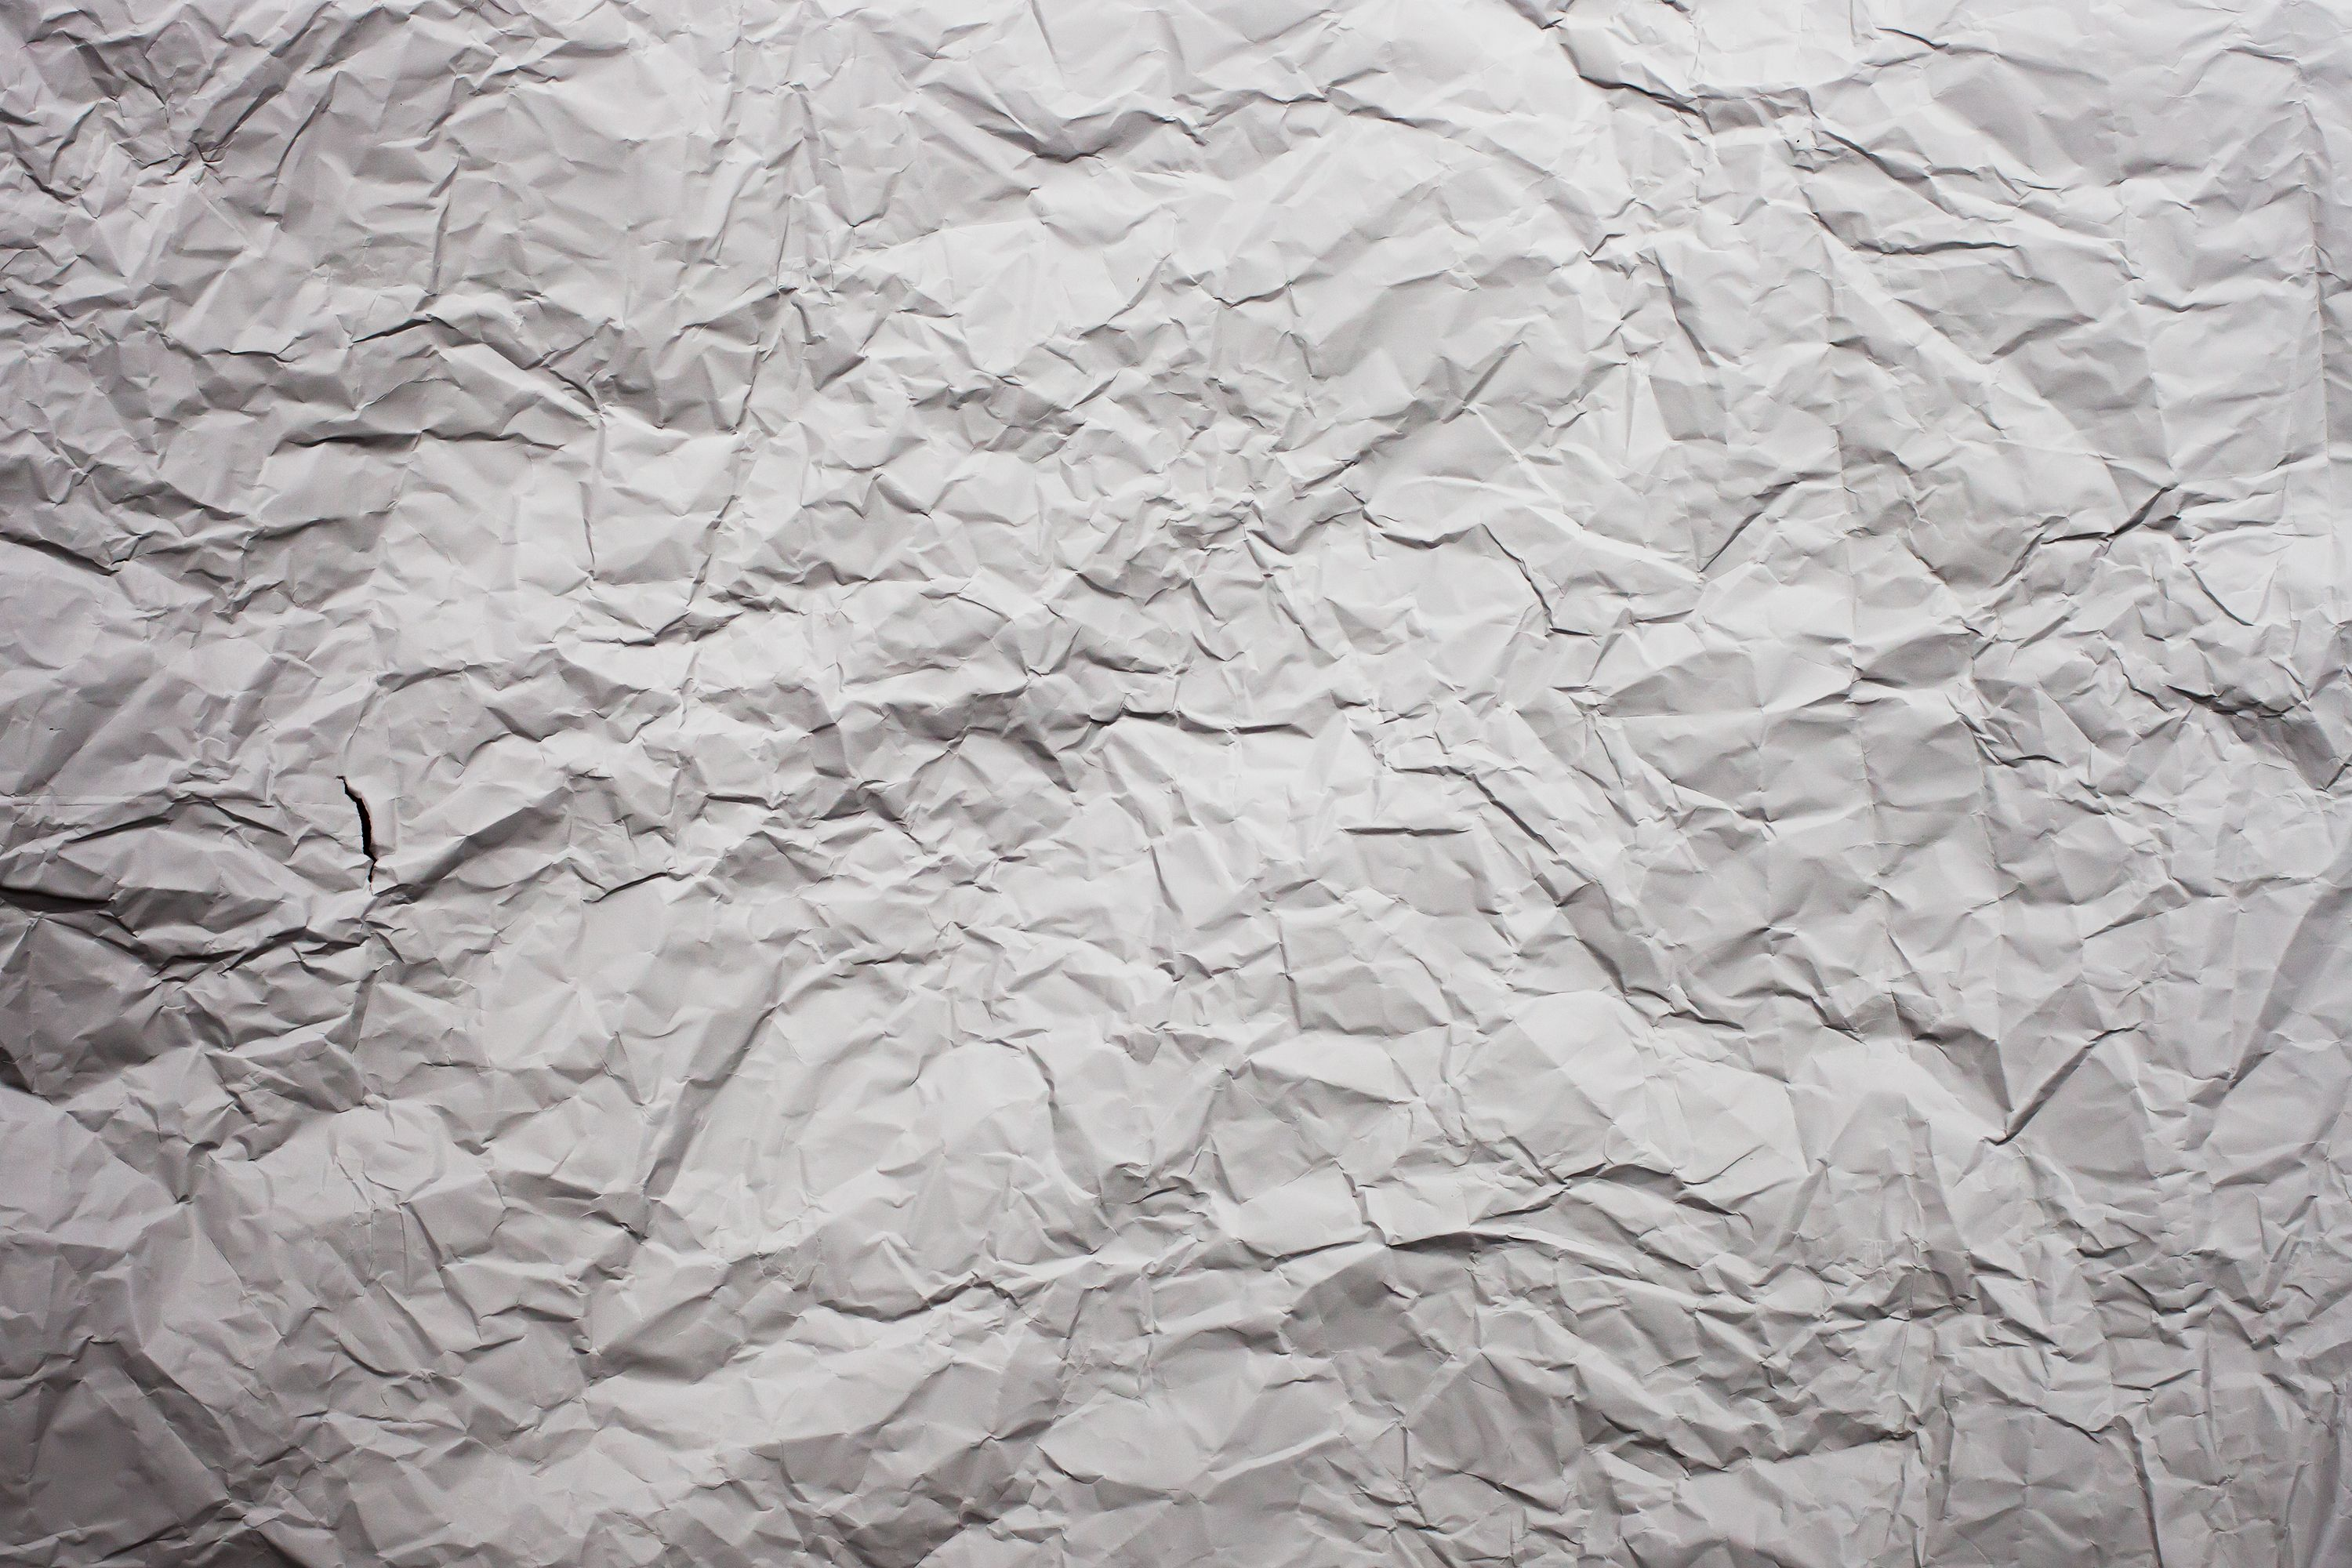 Creased White Paper | Paper texture, Textured background, Gray texture  background